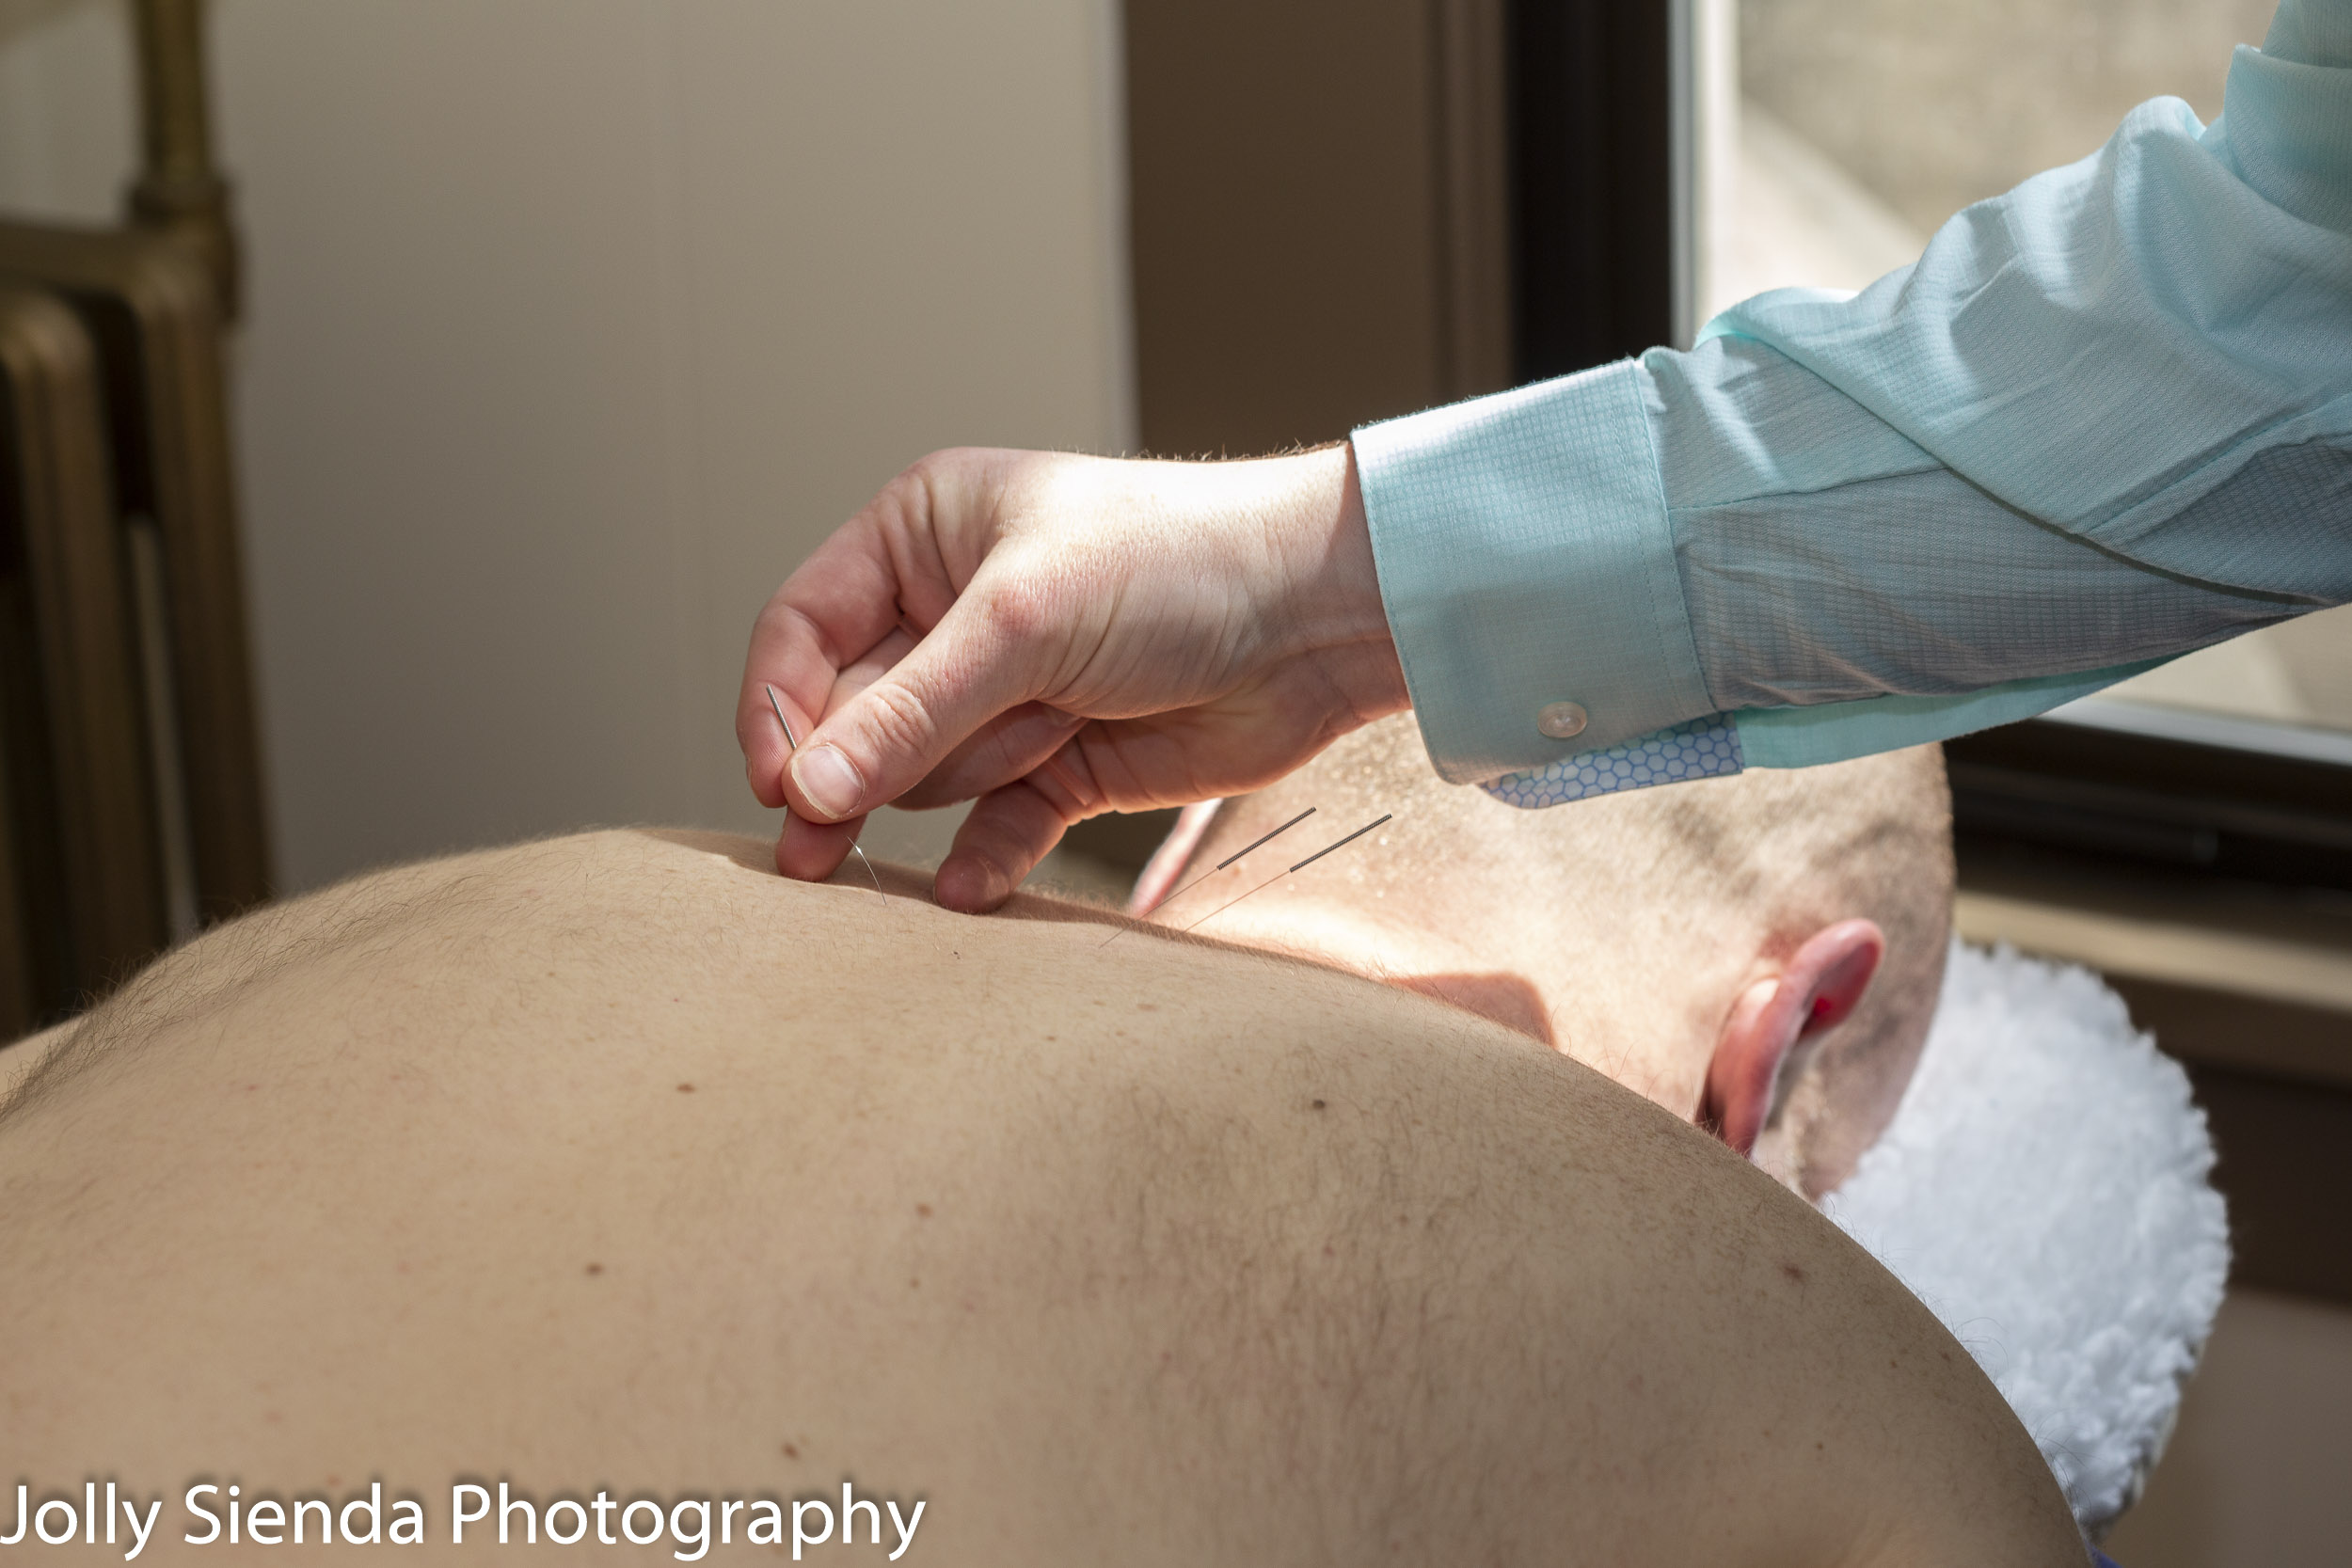 Patient receives an acupuncture treatment.